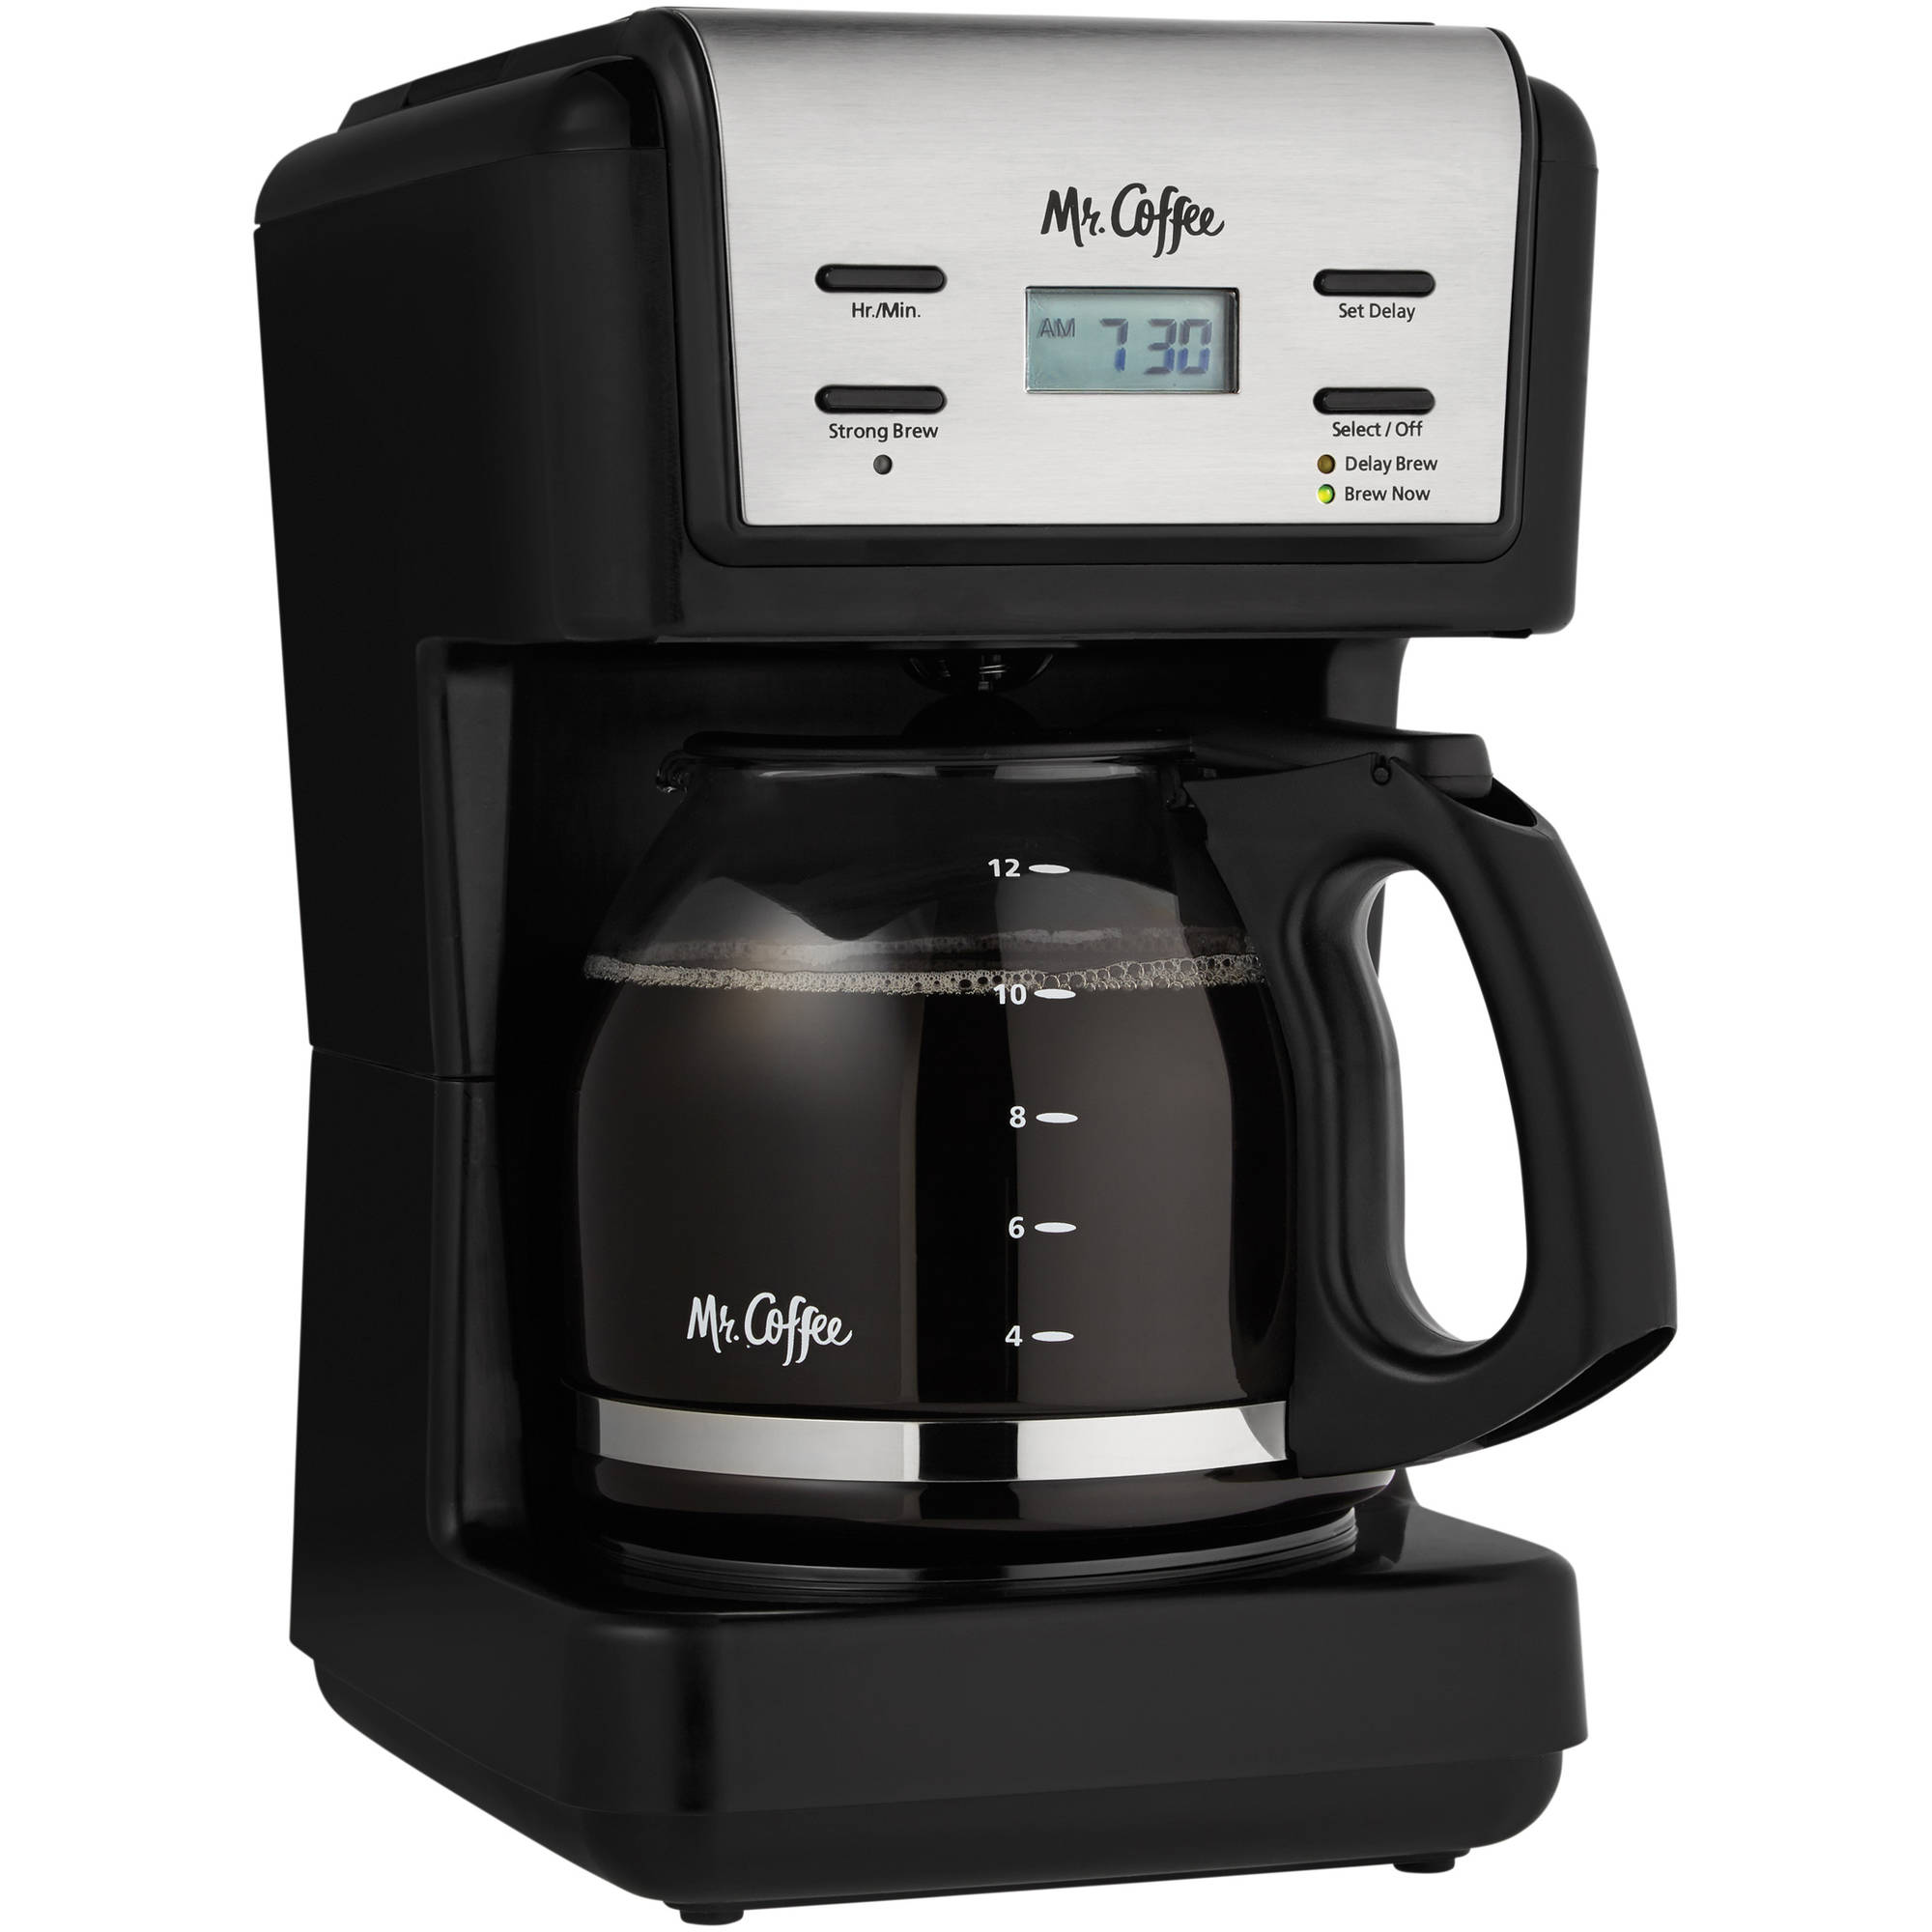 Mr. Coffee 12-Cup Programmable Coffee Maker, KNX